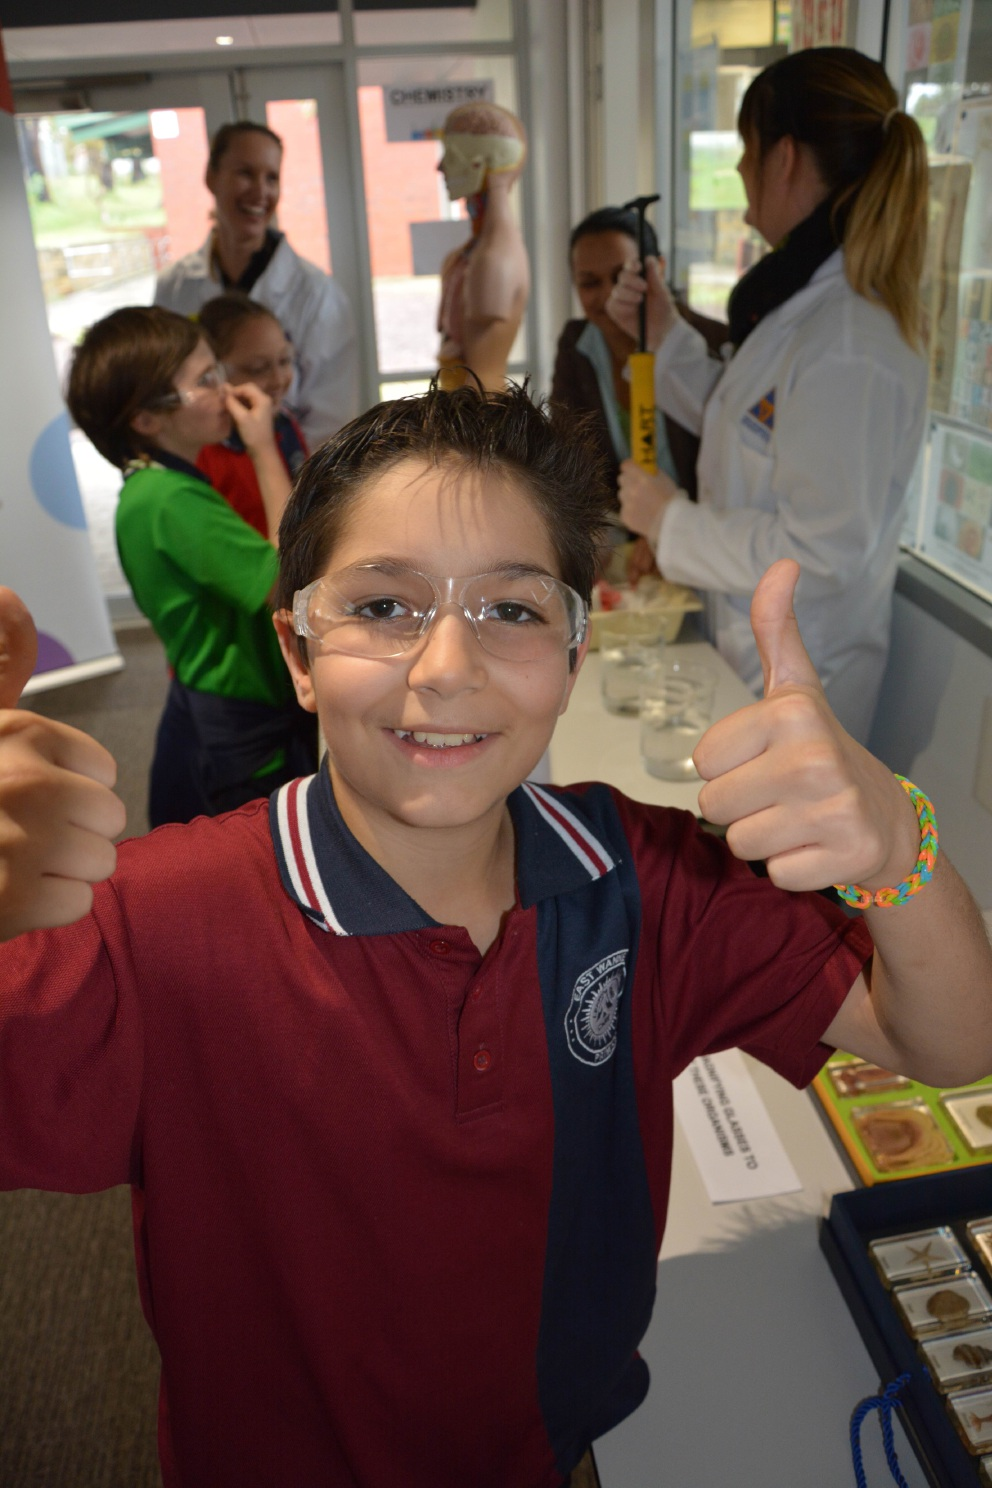 East Wanneroo Primary School Year 7 student Tyson Price gives the festival the thumbs up.